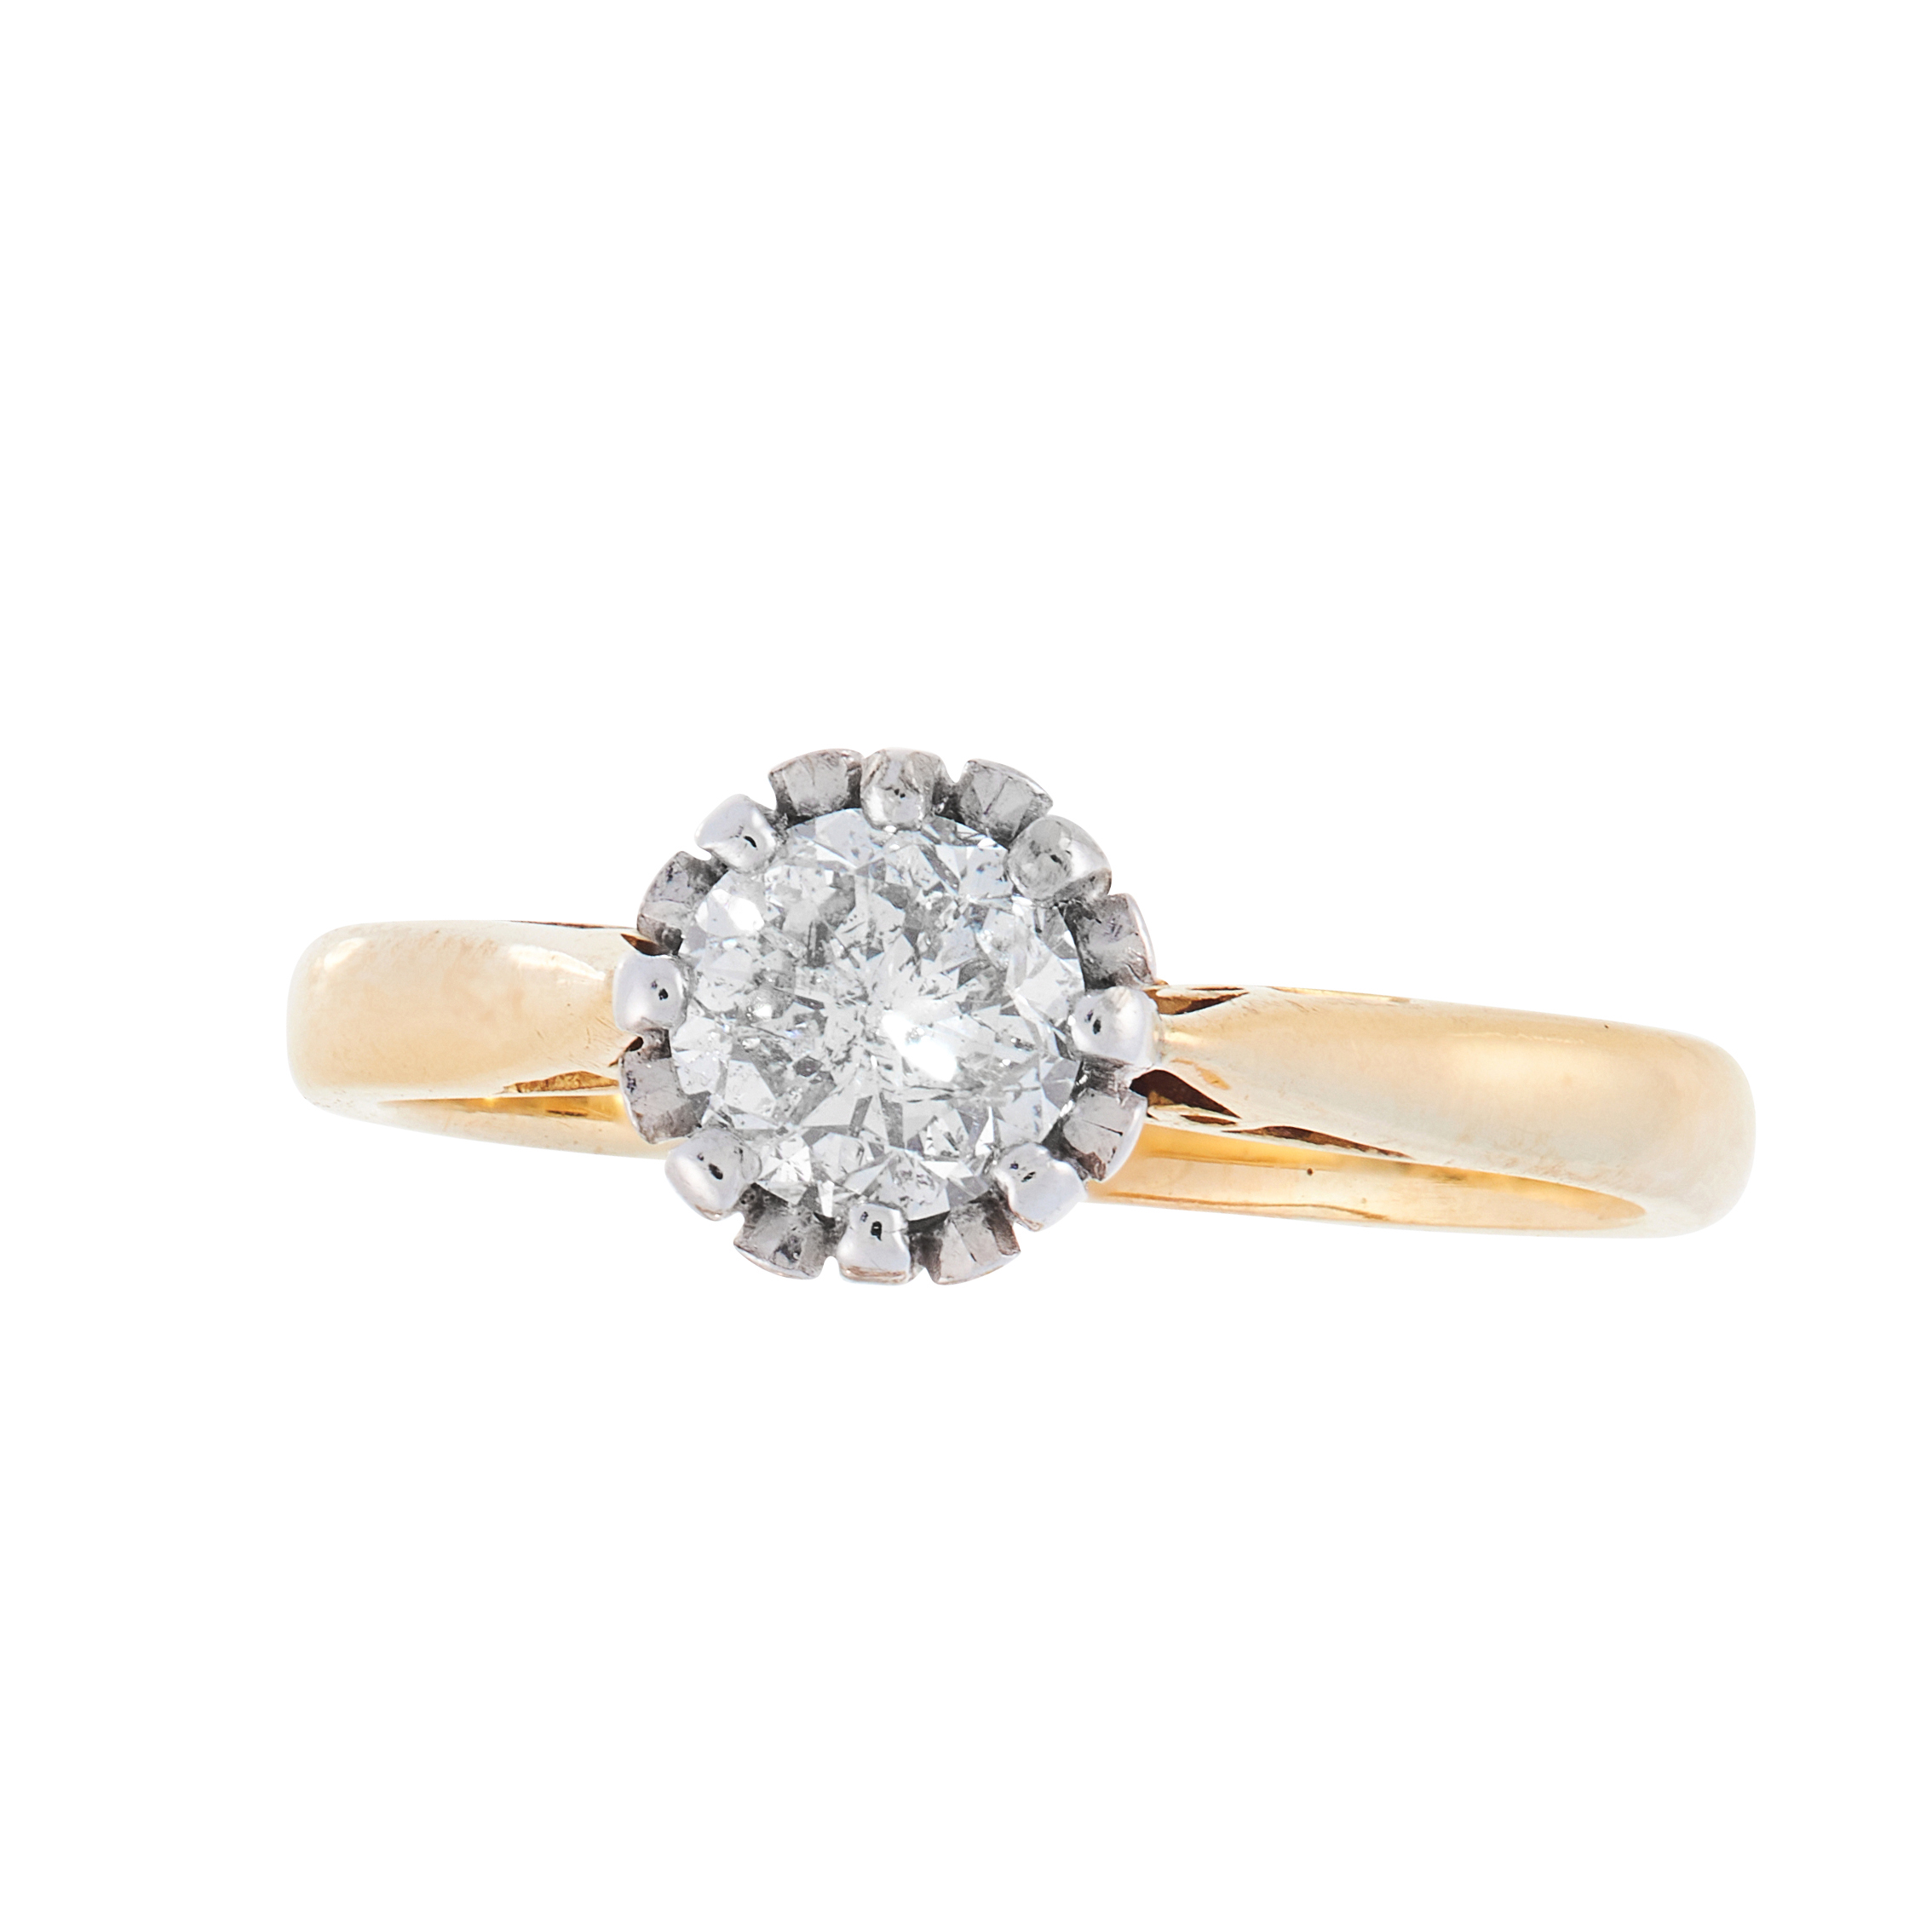 A SOLITAIRE DIAMOND DRESS RING in 18ct yellow gold, set with a round cut diamond of 0.75 carats,